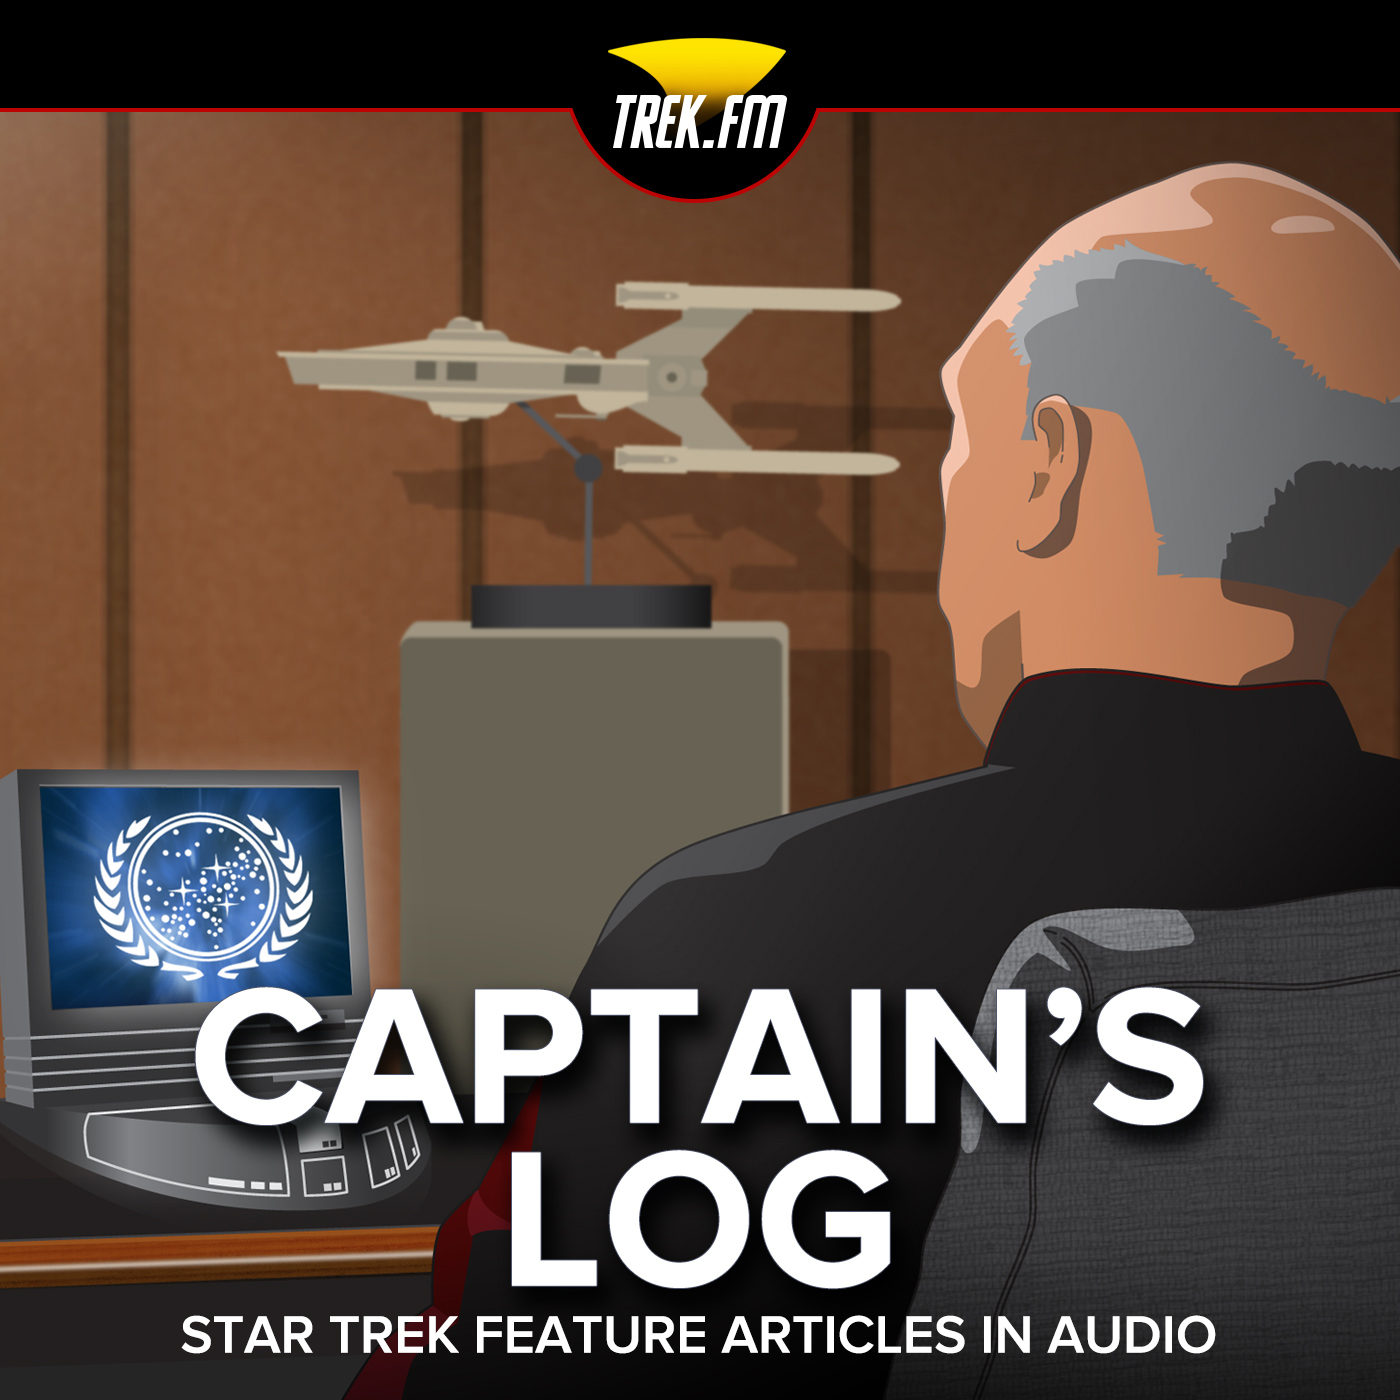 Star Trek Podcast | Captain's Log - Articles in Audio | Trek.fm